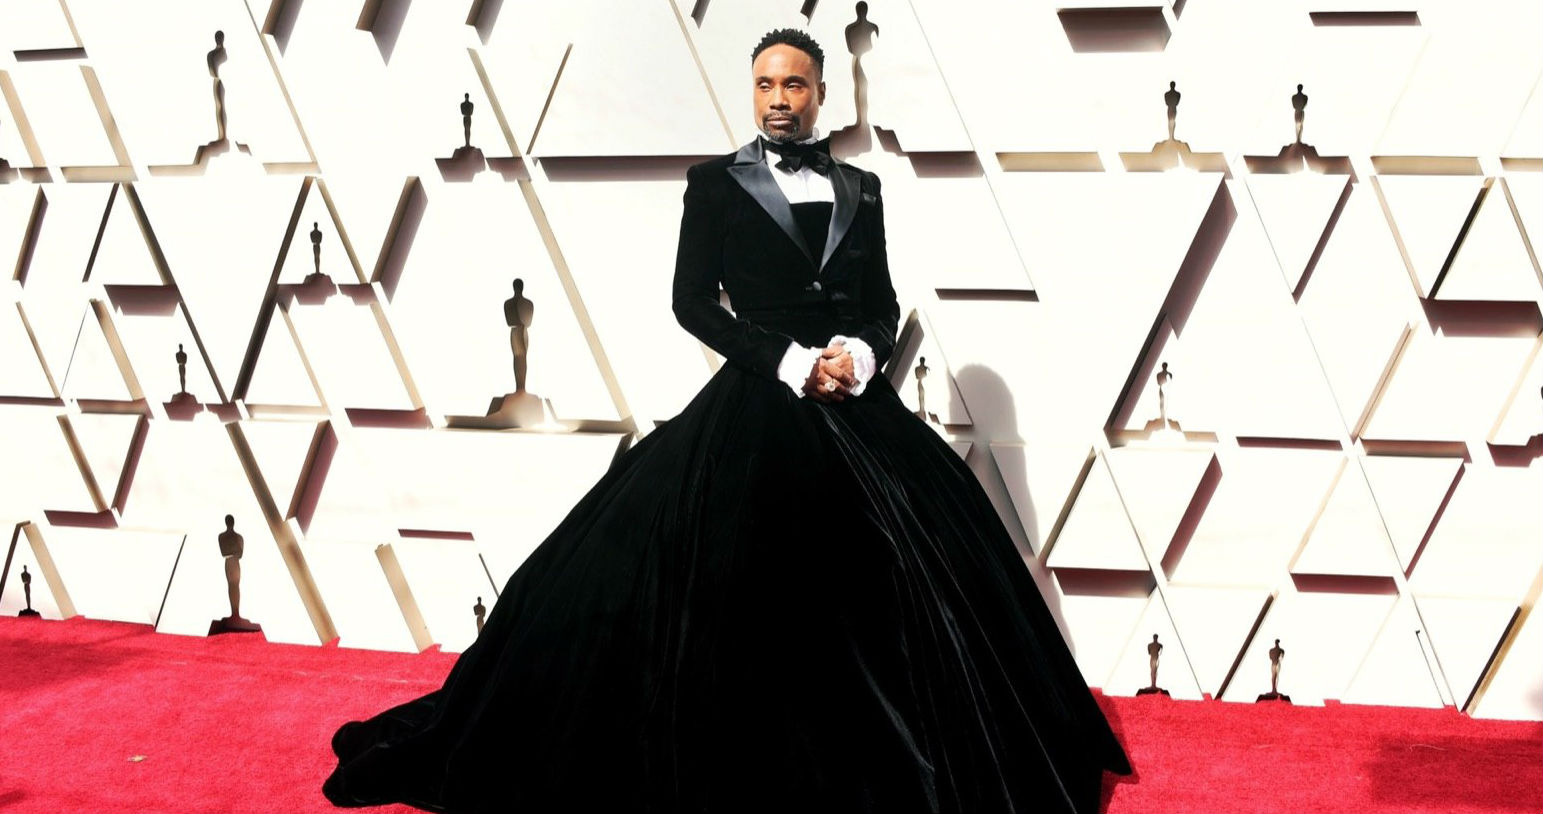 Billy Porter Couldn't Care Less About The People 'Uncomfortable' Seeing His 'Black A*s In A Ball Gown' If He Tried